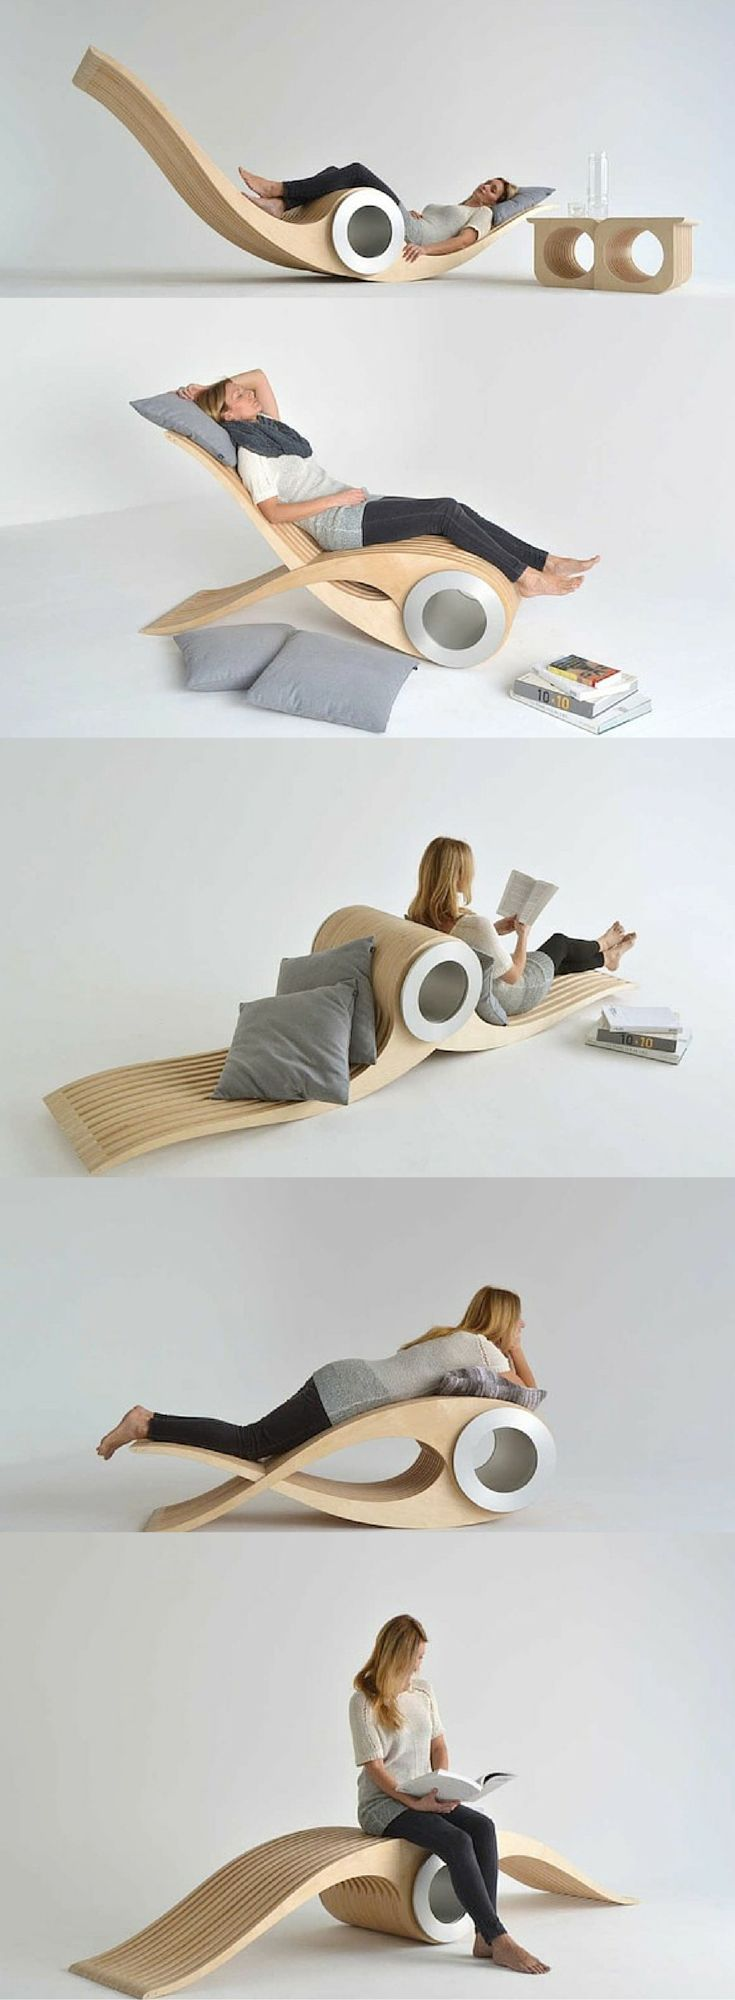 Transforming Chair Lets You Rest In Different Positions For Maximum Comfort.